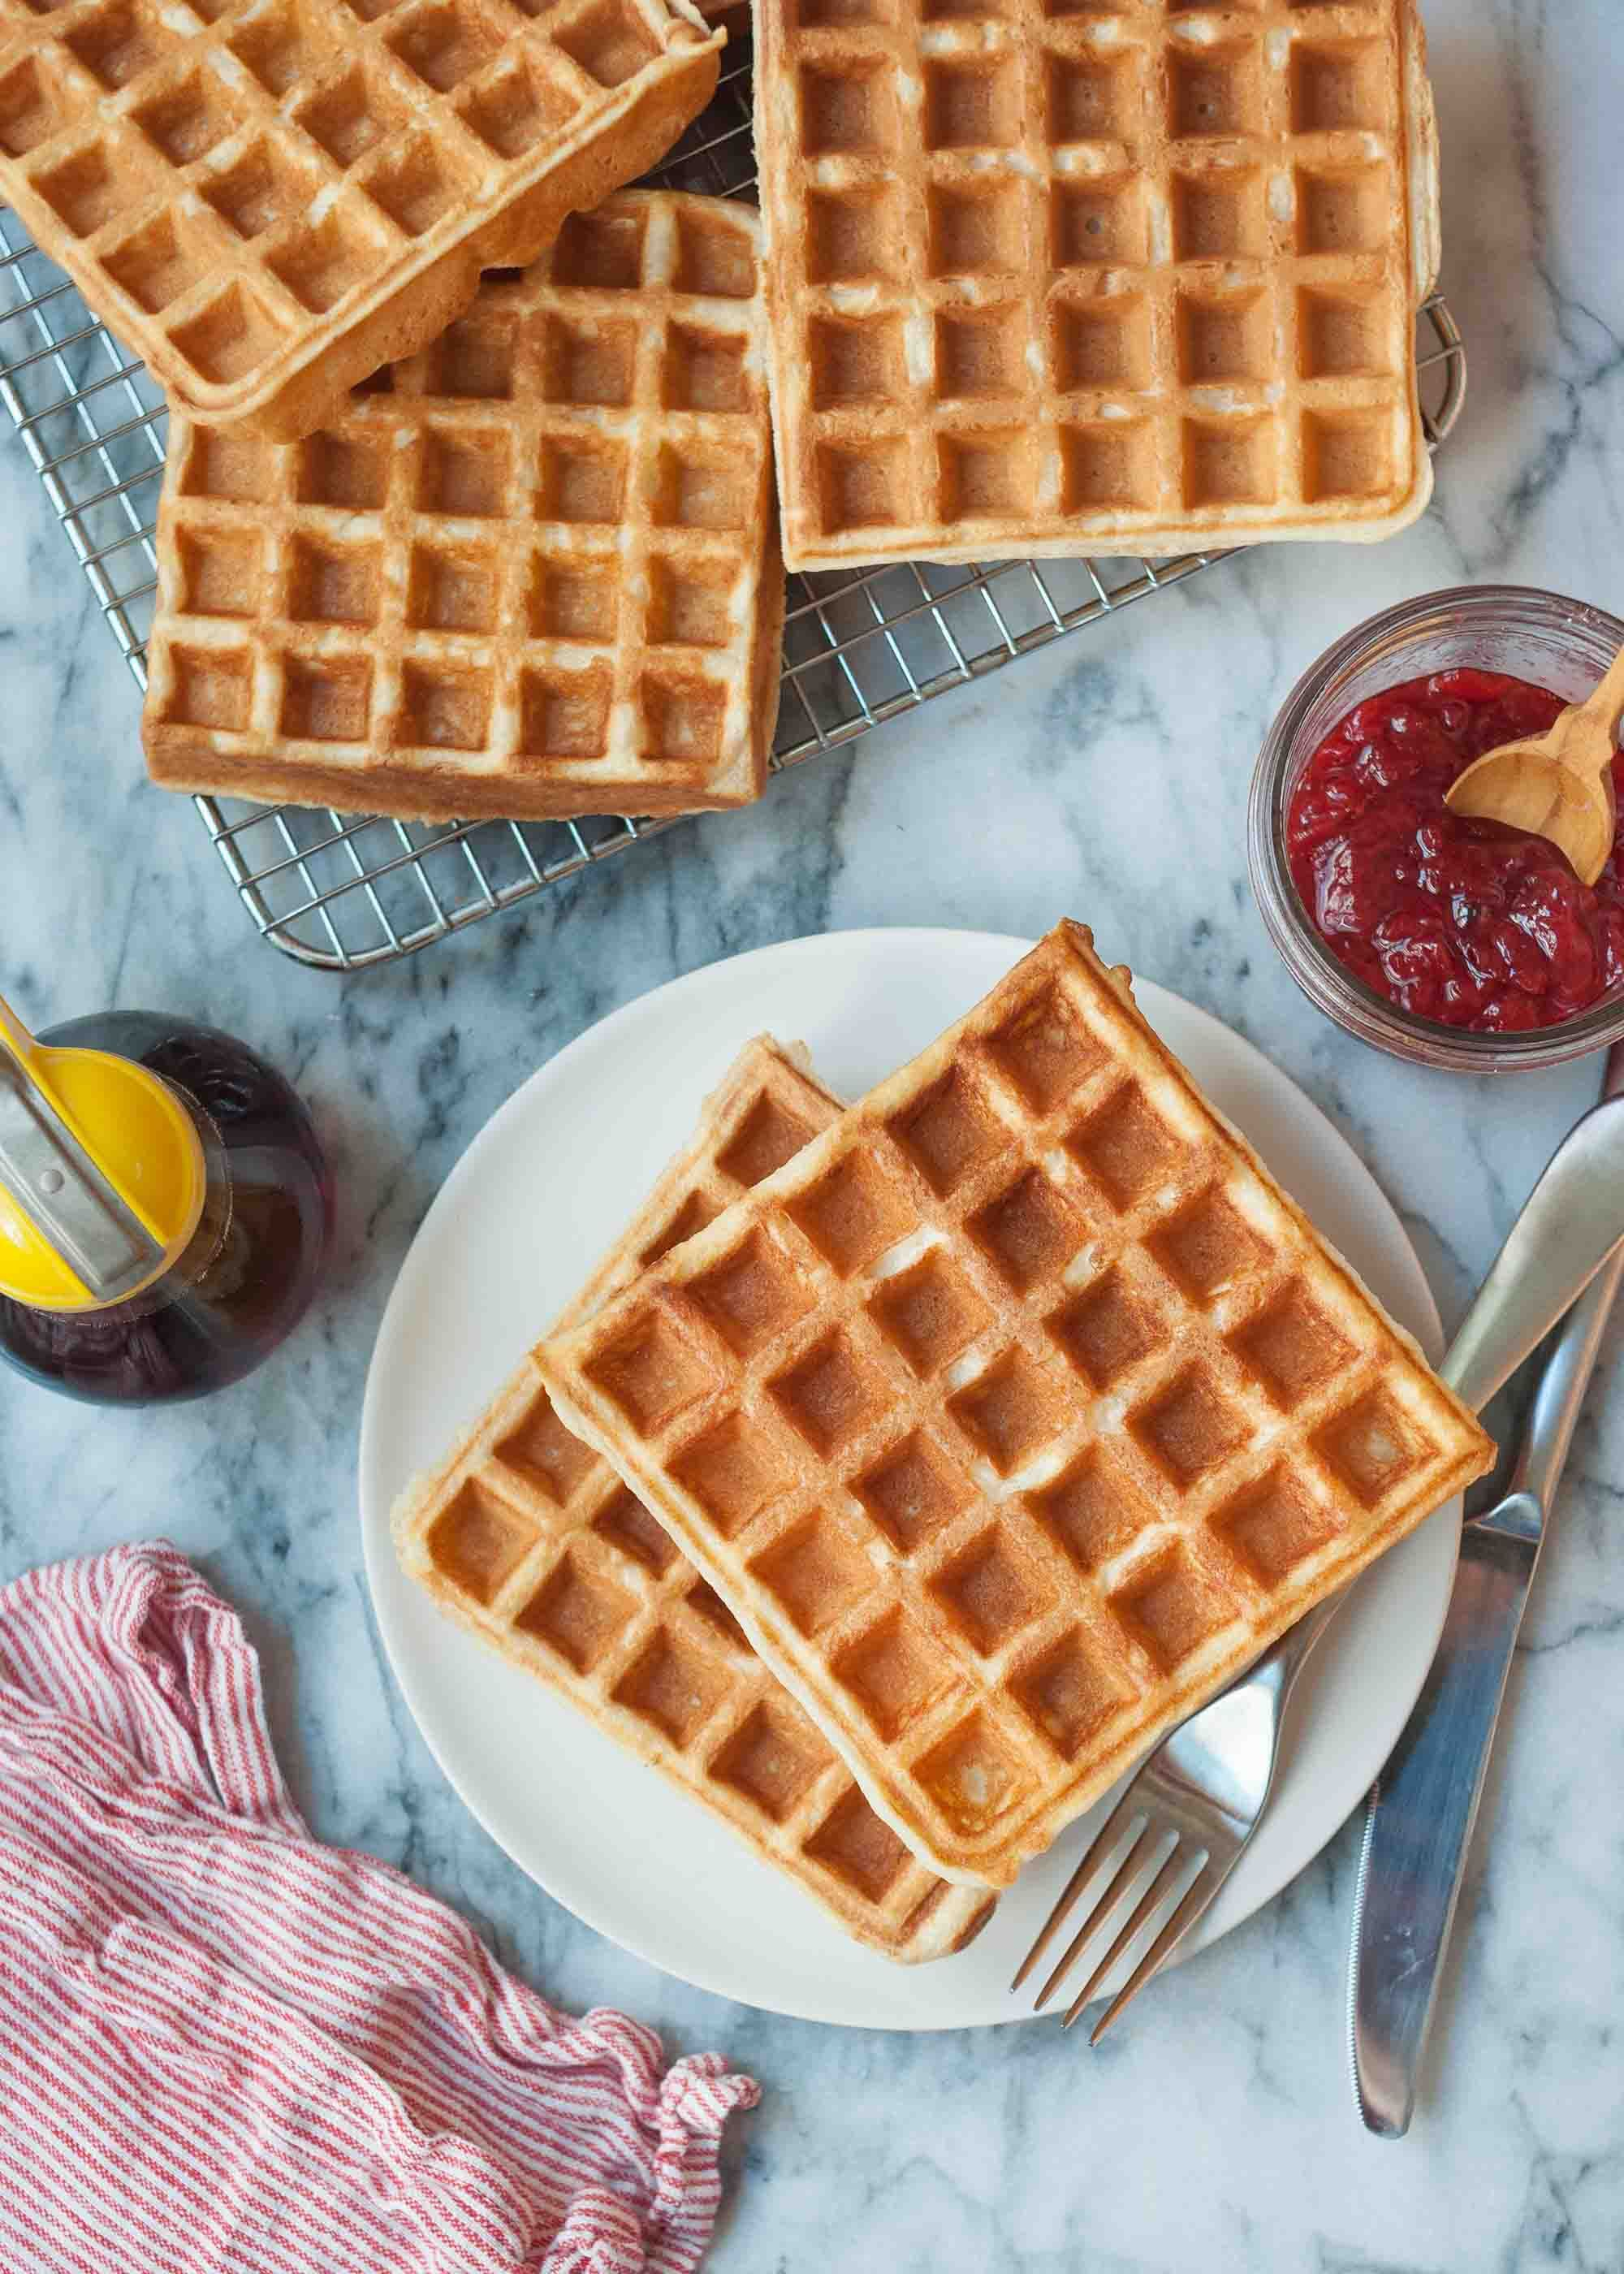 Buttermilk Waffle Recipe An Easy Classic Simplyrecipes Com Recipe Buttermilk Waffles Waffle Recipes How To Make Waffles